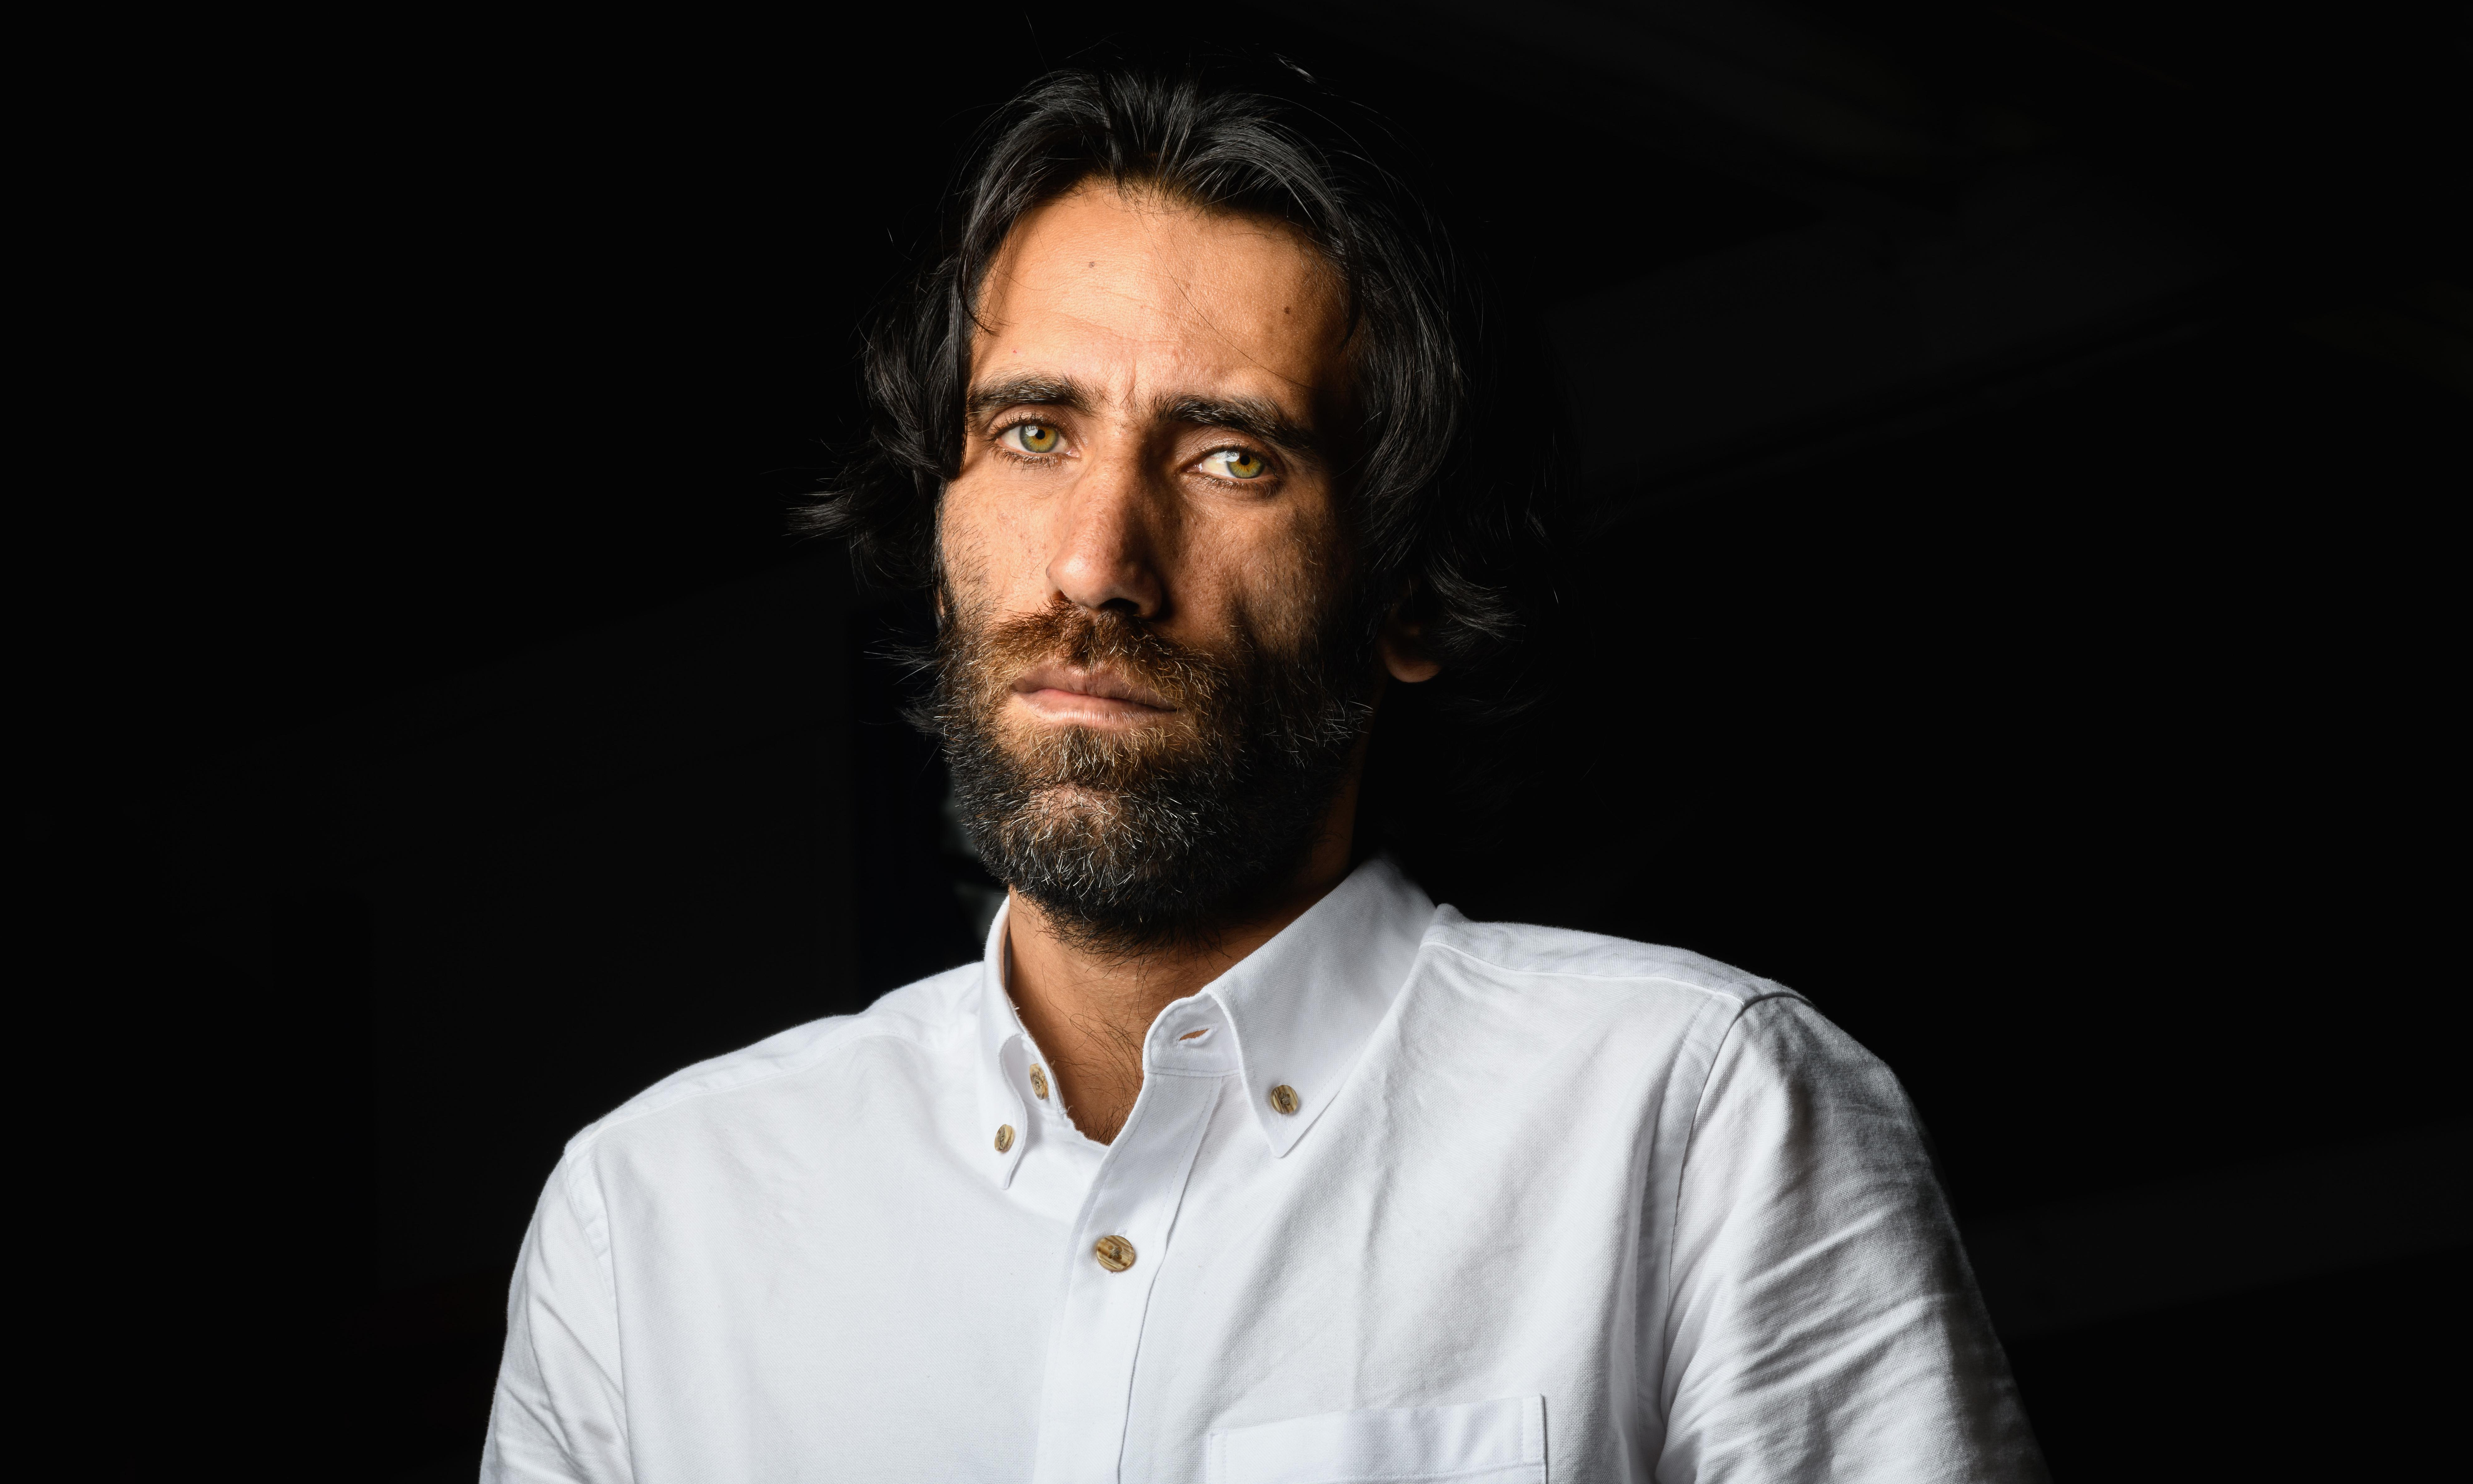 Behrouz Boochani's book, No Friend But The Mountains, to be made into a film